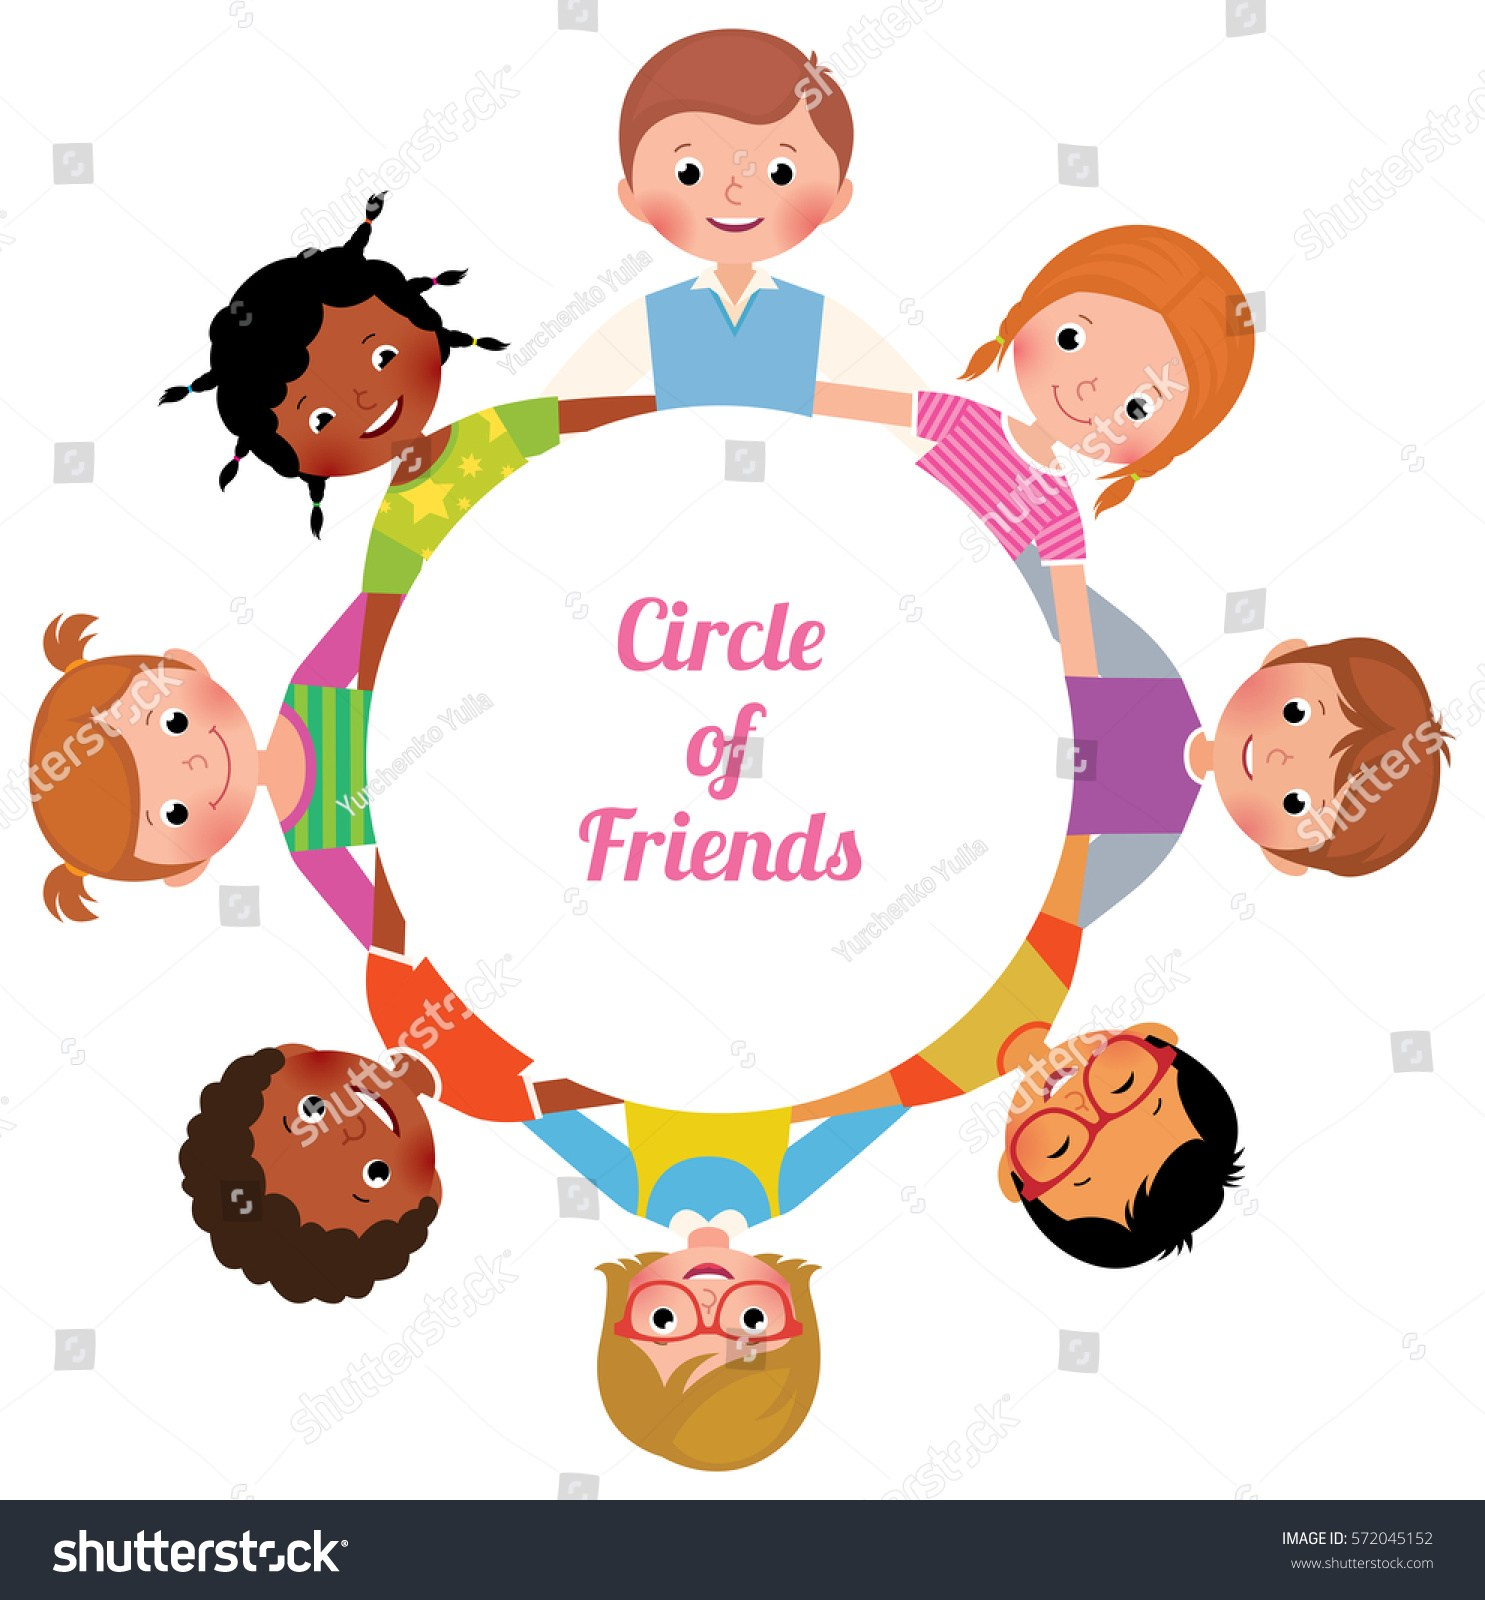 Circle of friends clipart free 5 » Clipart Portal.